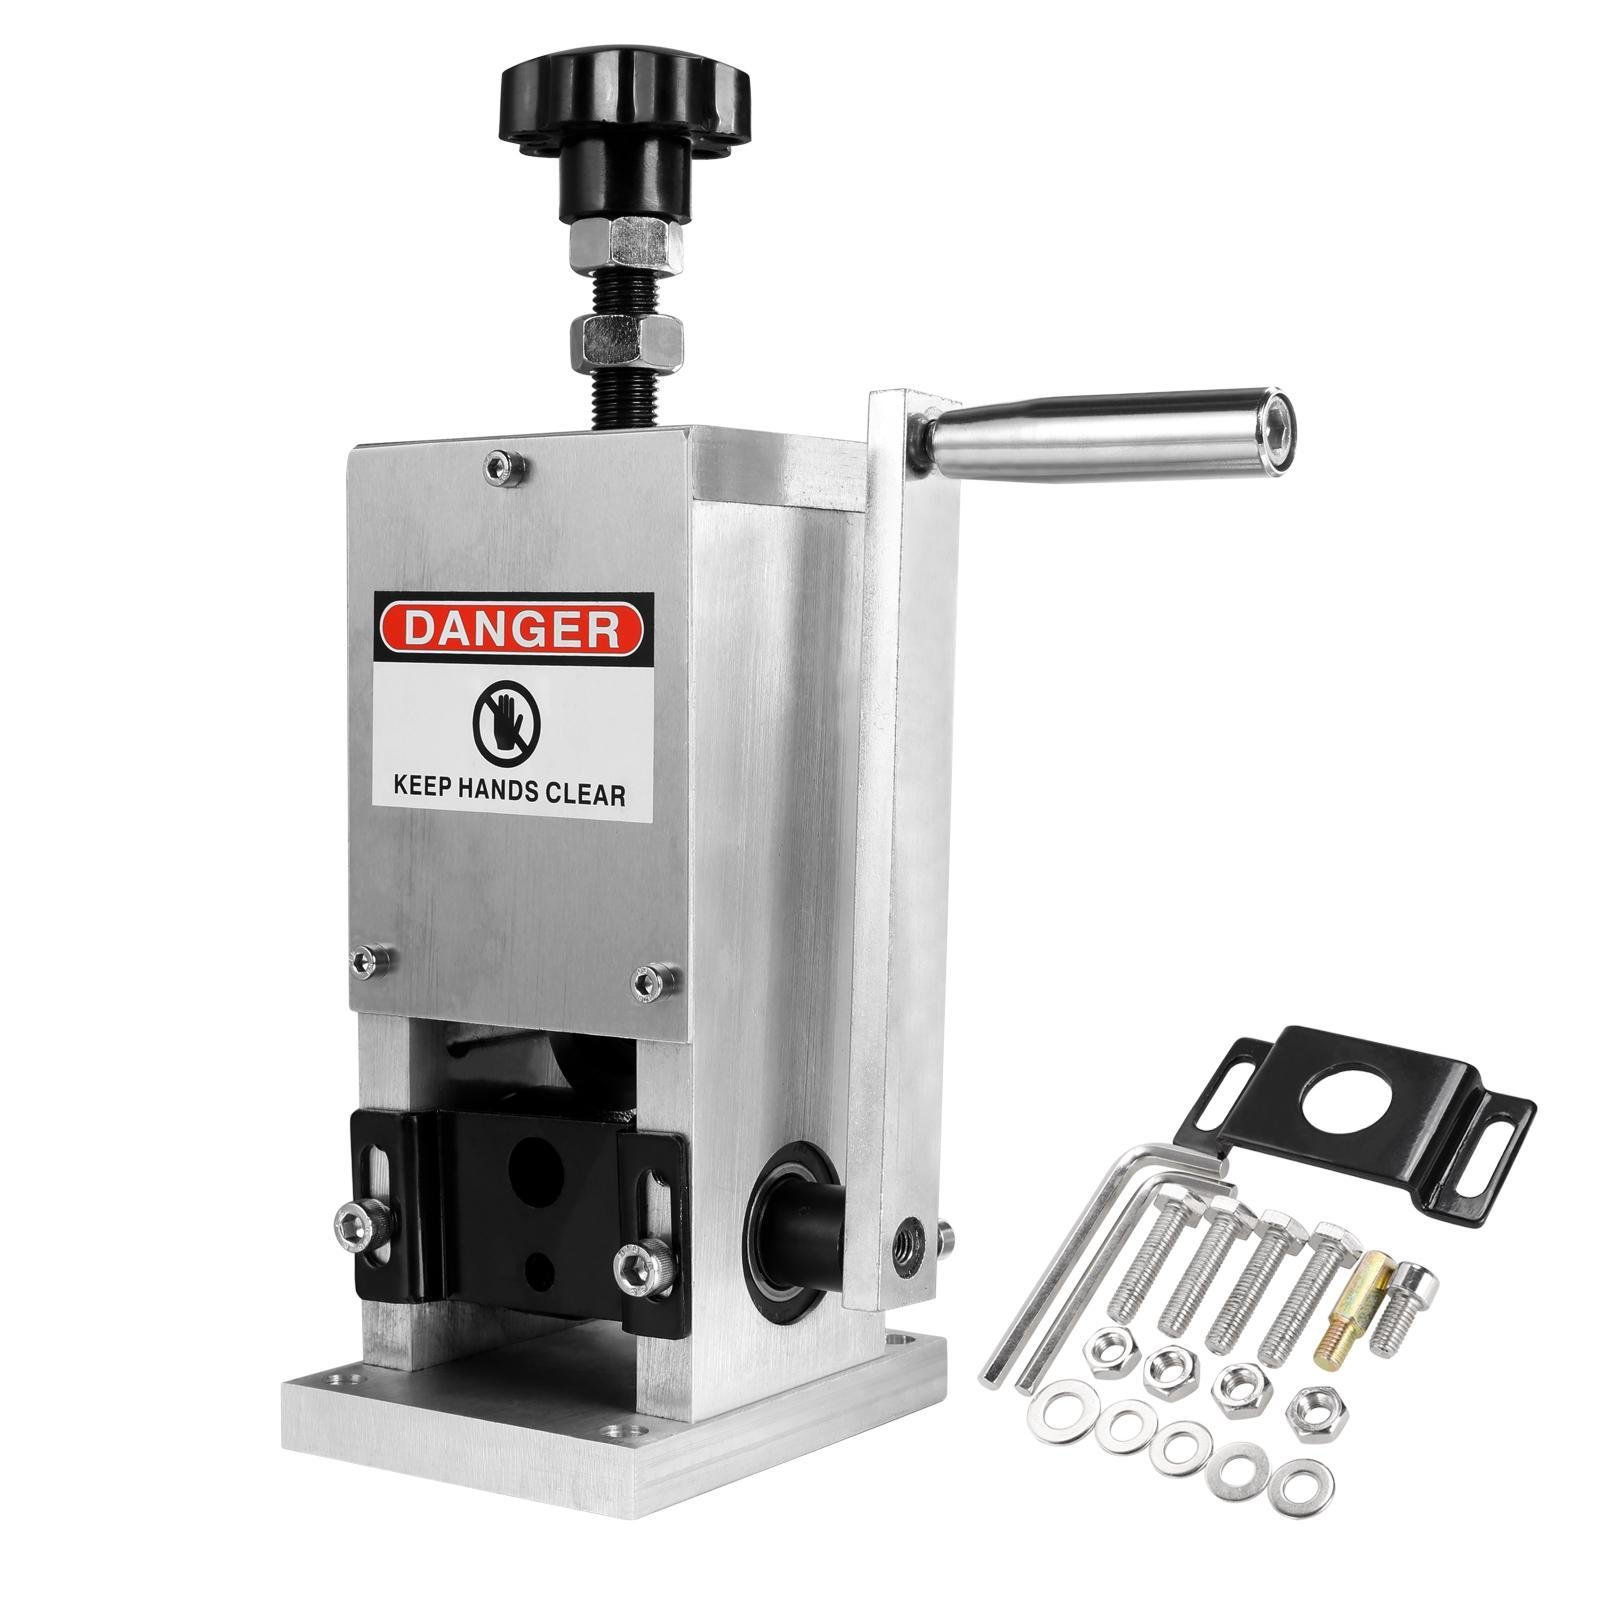 Hindom Adjustable Copper Wire Stripper/Wire Stripping Machine Manual Crank & Drill Operated Cable Stripper, US STOCK